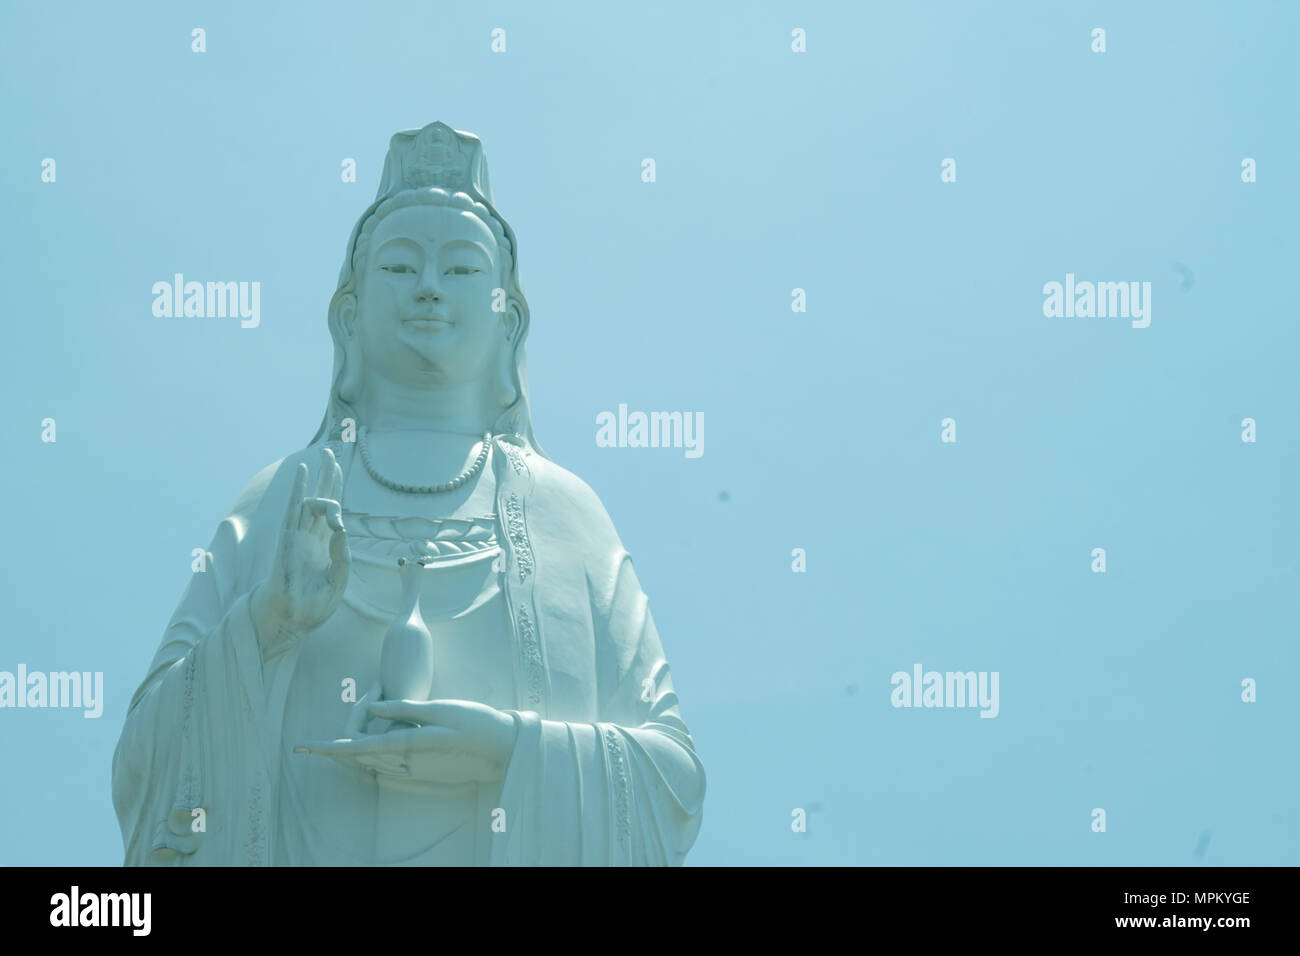 Bodhisattva statue in sky background. Royalty high quality free stock image of white bodhisattva statue in blue sky background. Da Nang city, Vietnam - Stock Image